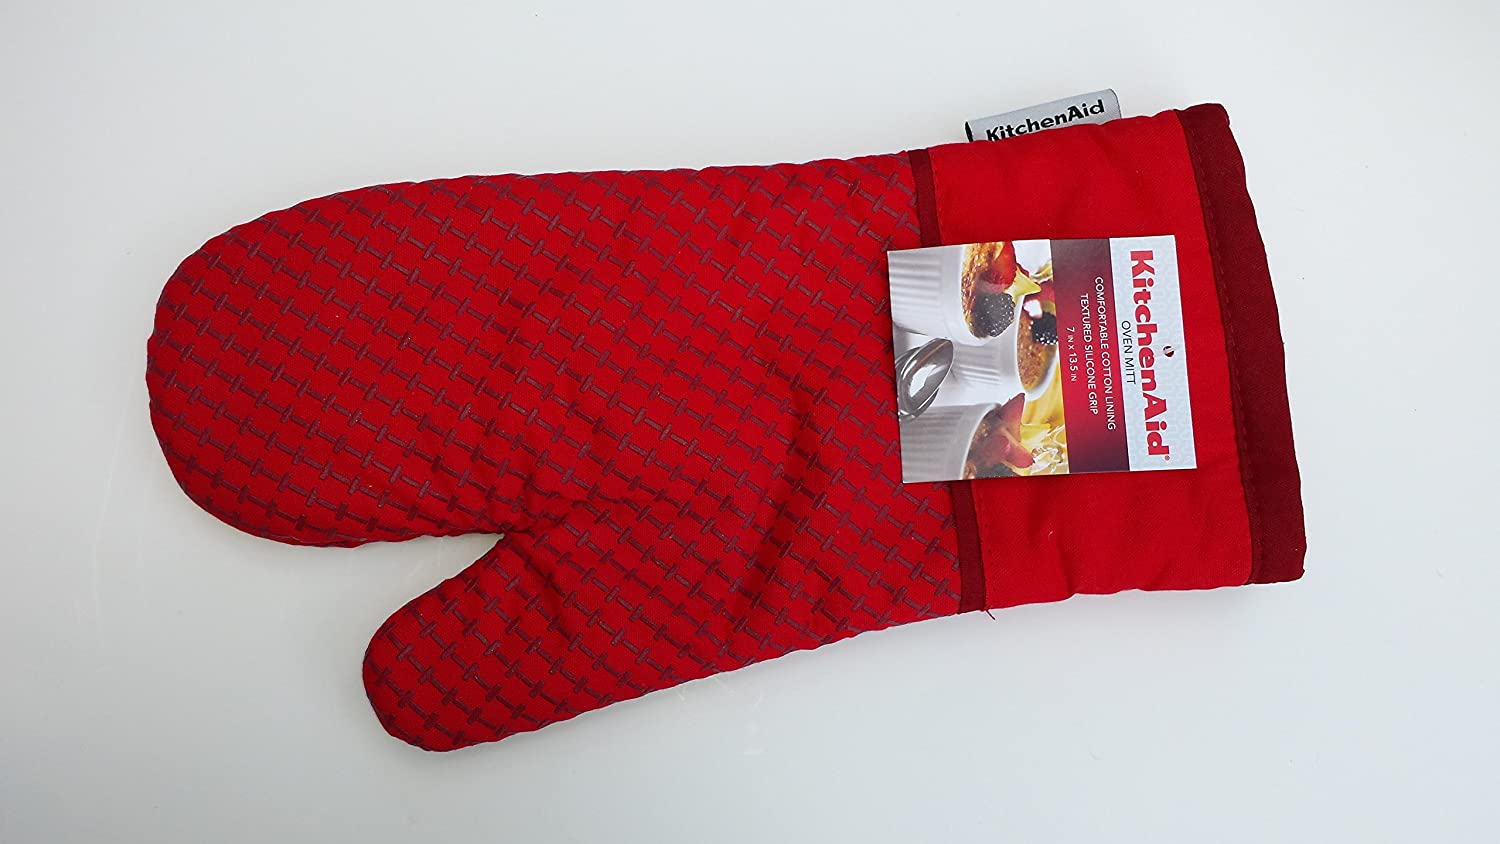 Superbe Amazon.com: Kitchenaid Cotton Oven Mitt With Textured Silicone Print Grips  (Fire Red): Home U0026 Kitchen